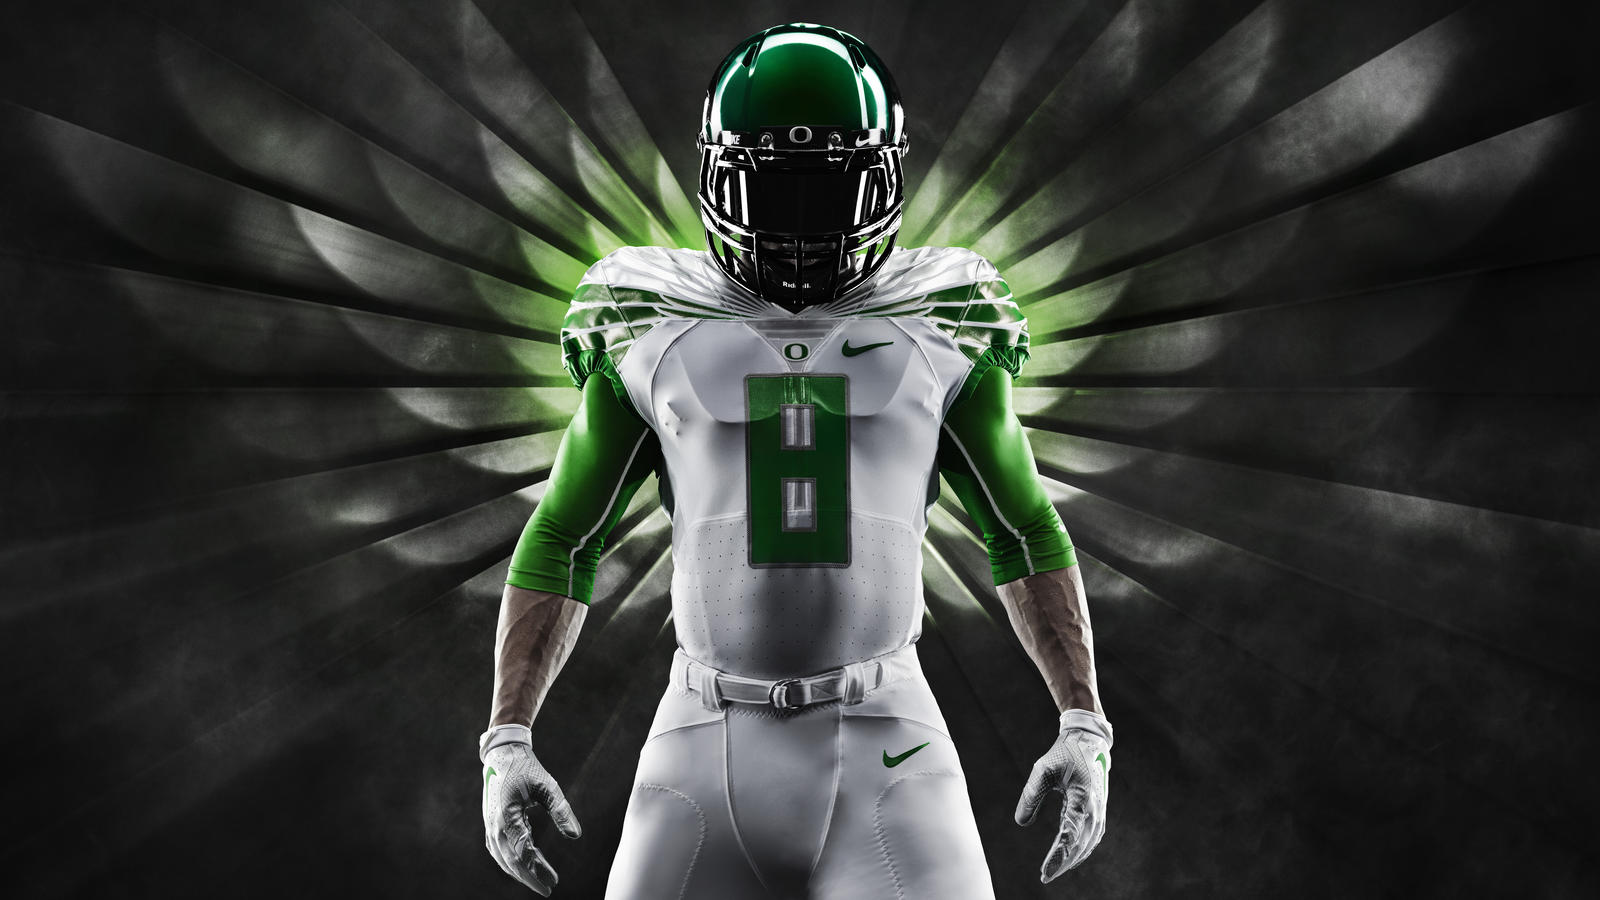 20131126_nike_oregon_white_0155_wings